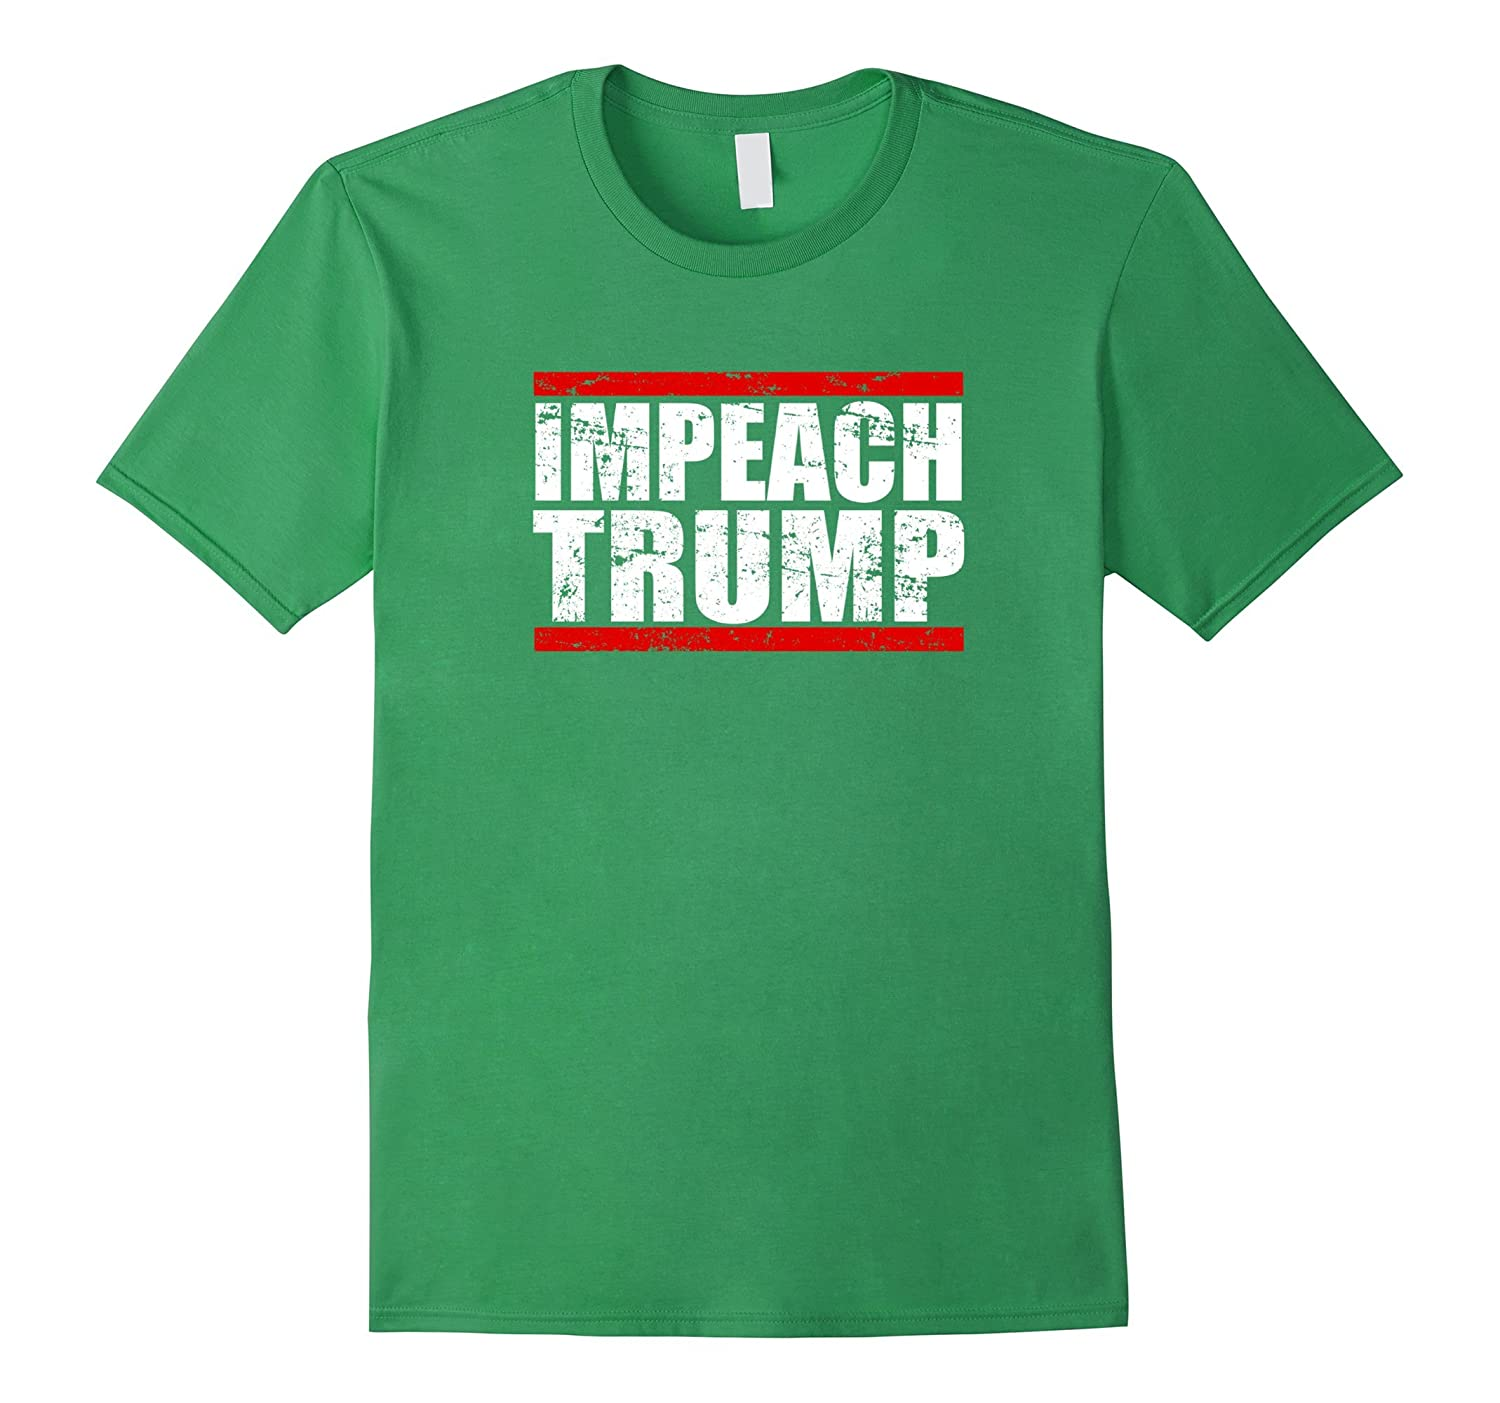 Impeach Donald Trump T Shirt Funny Presidential Election Rt